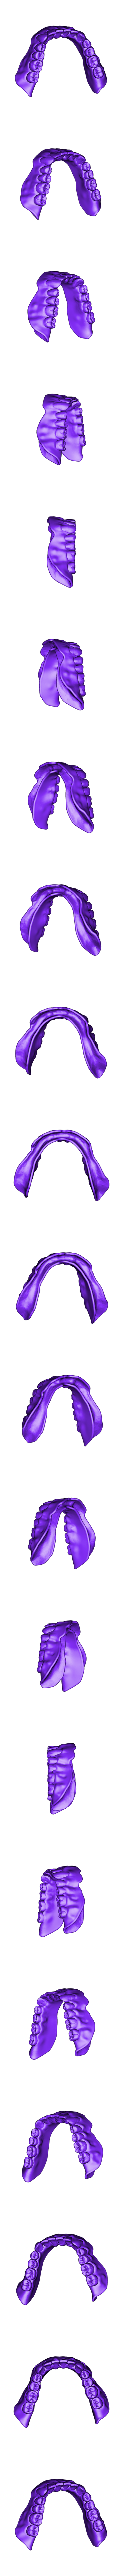 FullDentureLower.stl Download OBJ file Full Dentures with Many Production Options  • 3D printing object, LabMagic3DCAD